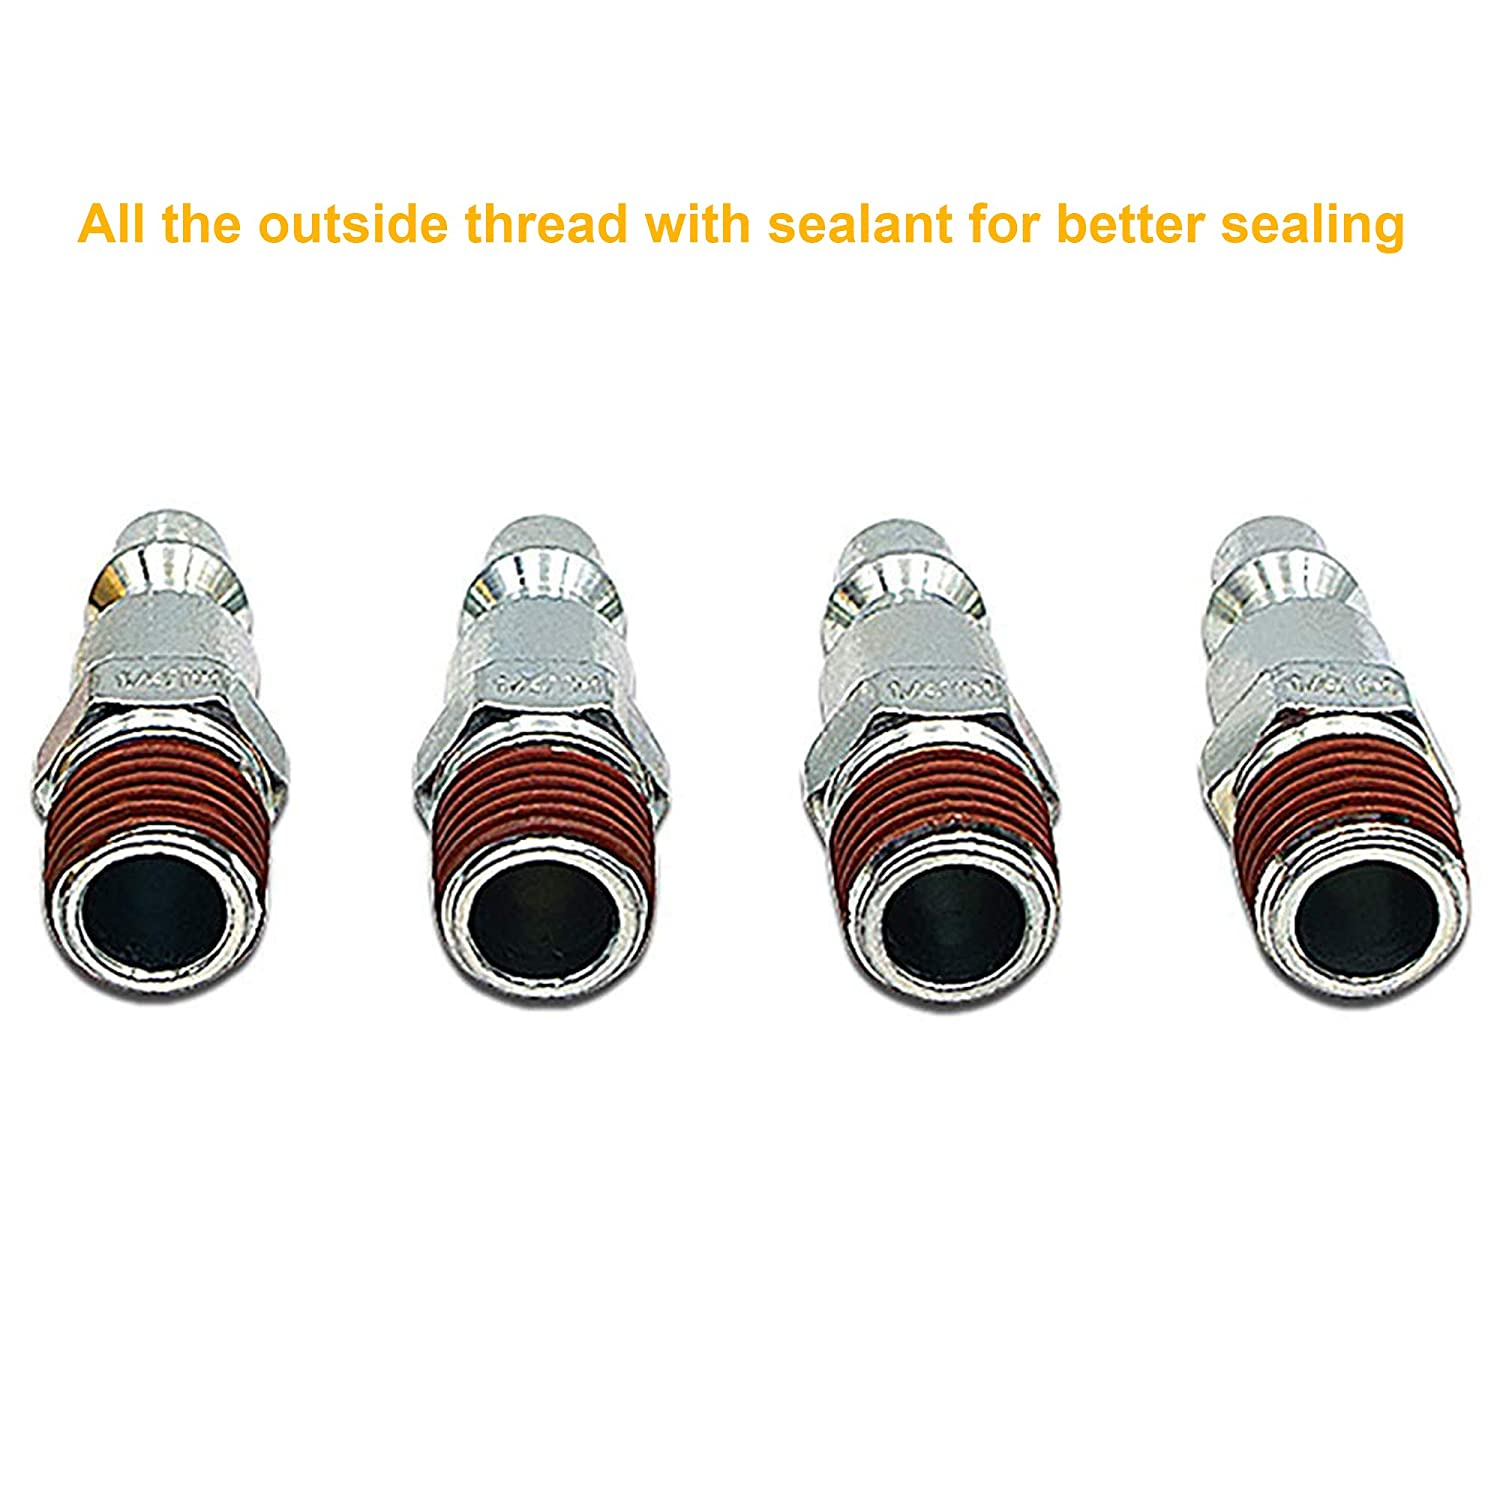 5 Pcs Air Hose Quick Connect,1//4 NPT Air Fittings Industrial Type I//M,1//4 Basic Body Size,Air Compressor Accessories Kit,1//4 NPT Air Hose Fittings 1//4 NPT Air Fittings Industrial Type I//M 1//4 Basic Body Size Automan Pro FIXSMITH Air Coupler Plug Kit